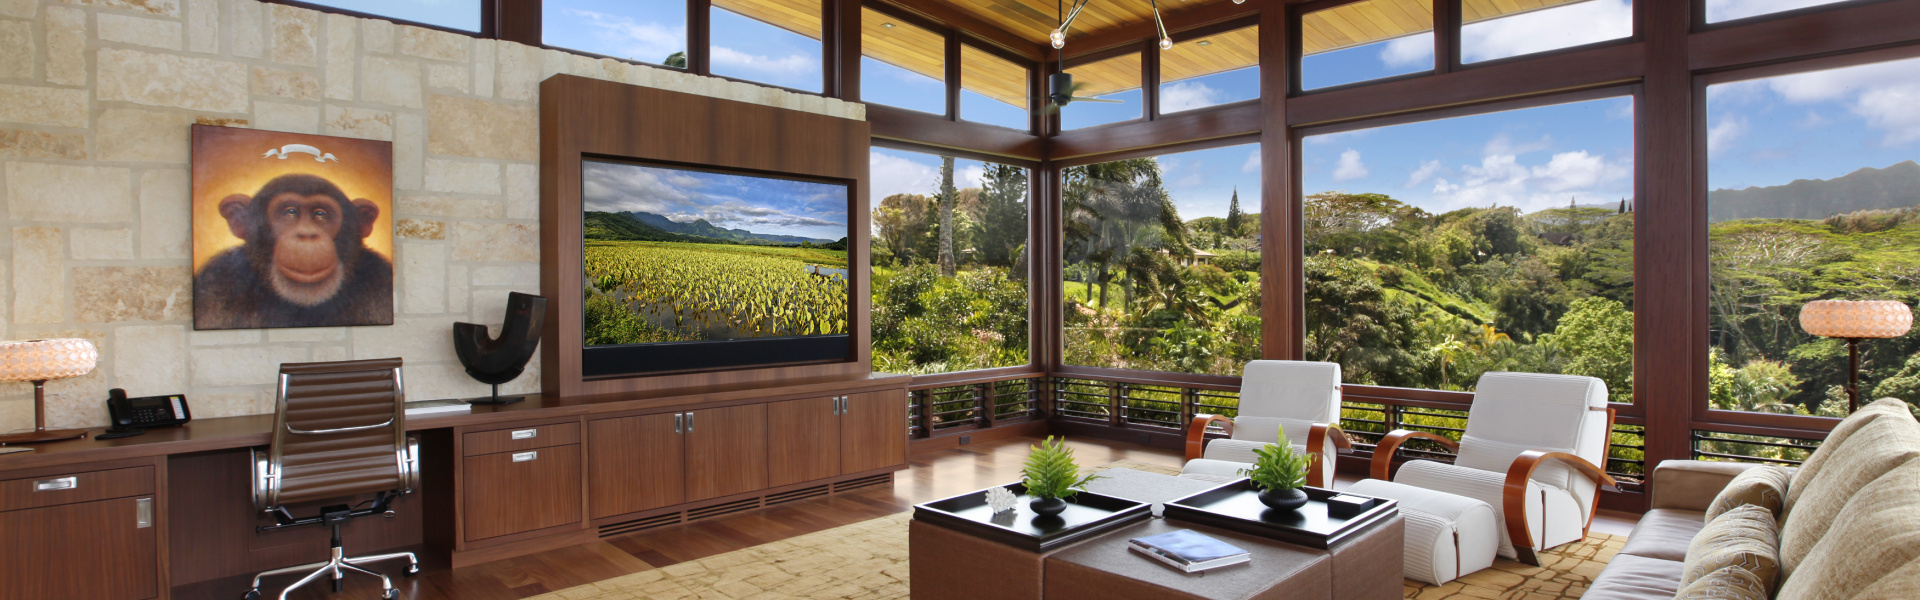 Smart home installation by Pacific Audio Communications for Honolulu